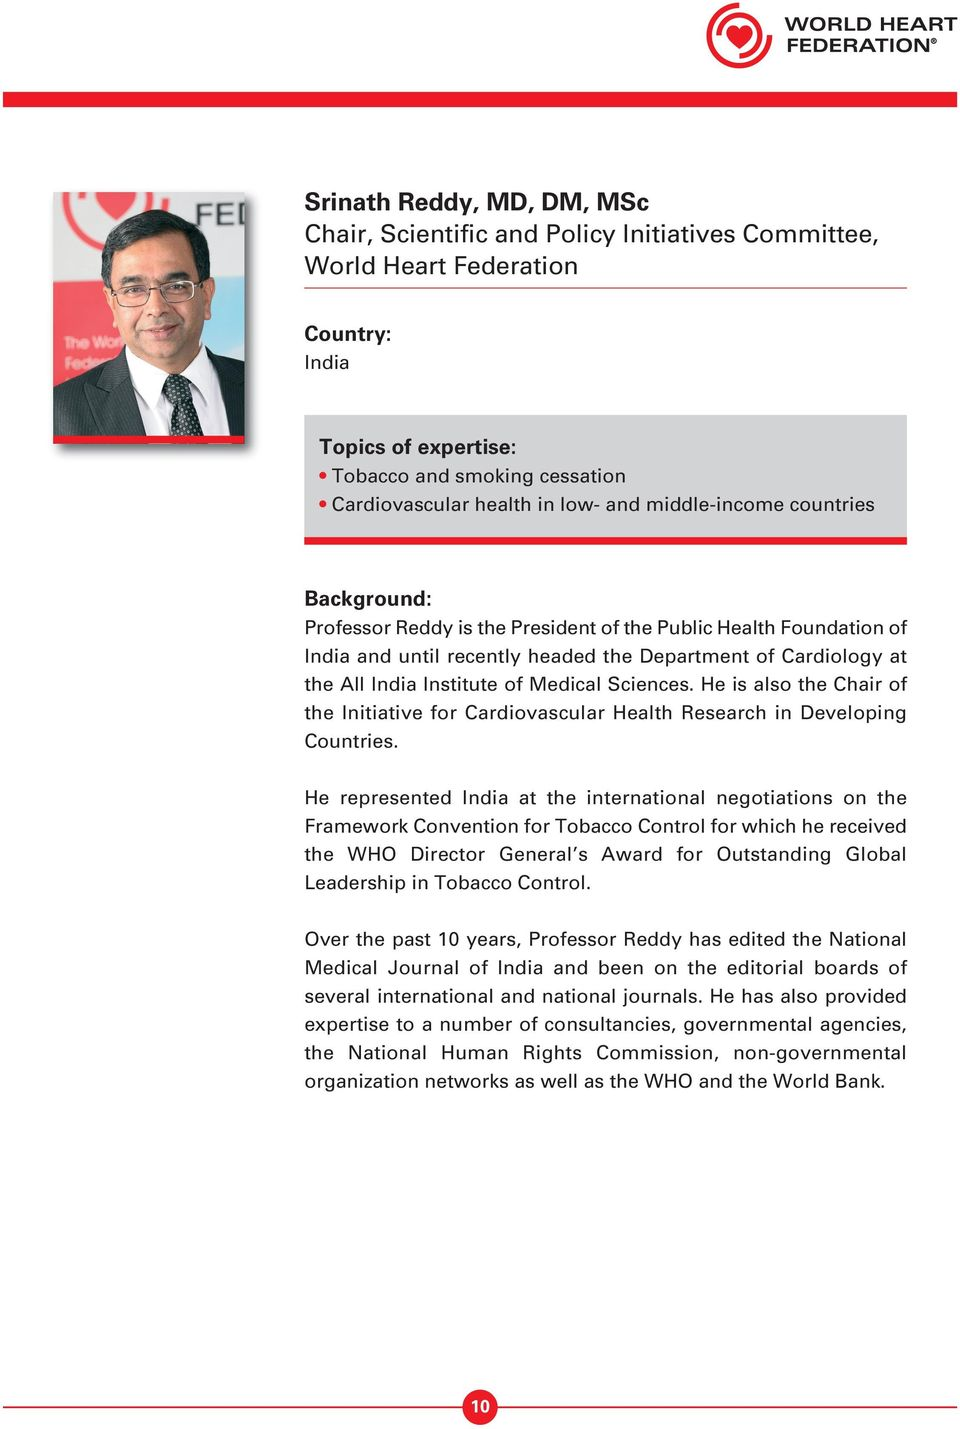 He is also the Chair of the Initiative for Cardiovascular Health Research in Developing Countries.